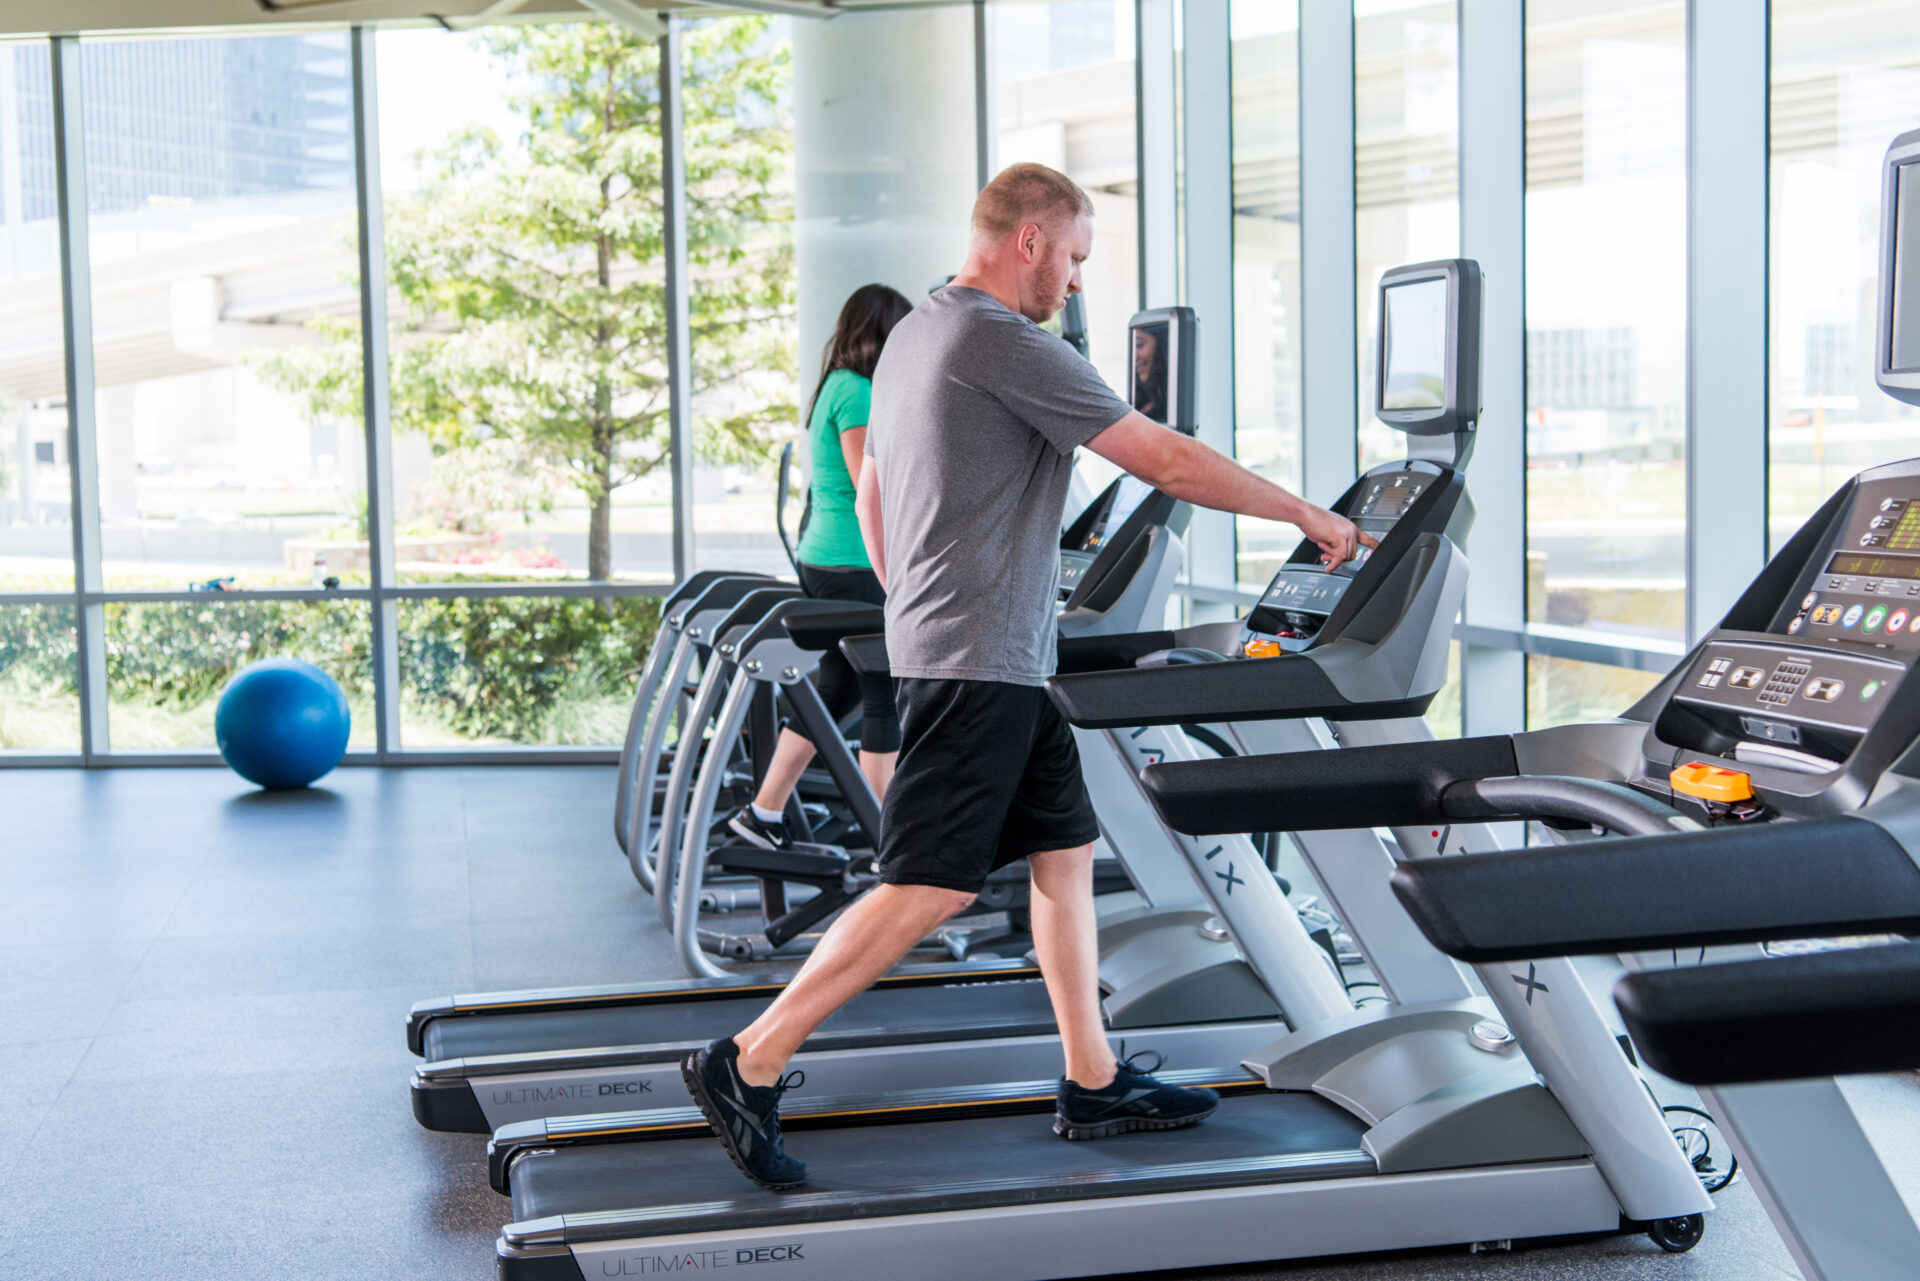 Prepare an Emergency Plan for Your Fitness Center